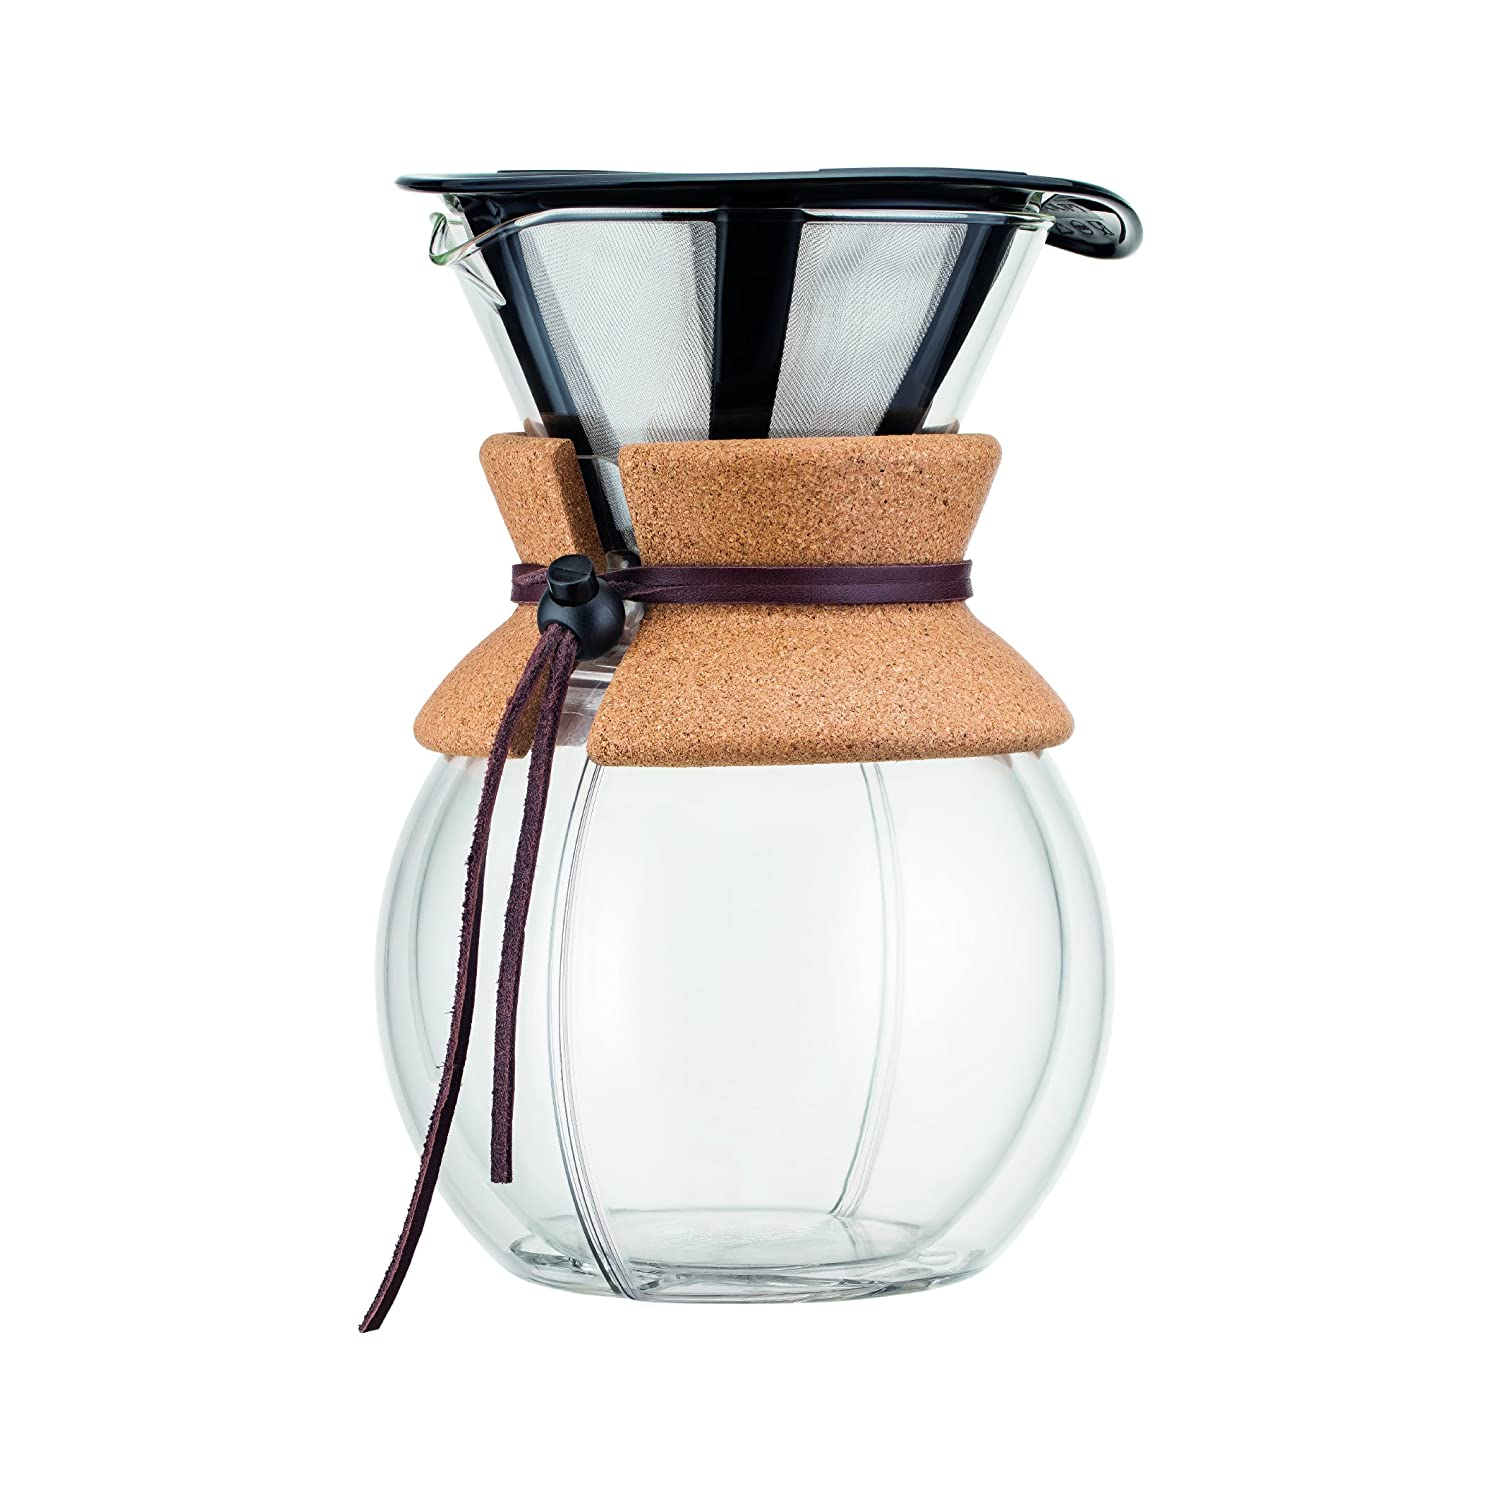 BODUM Pour Over Double Wall Coffee Maker, 16.2 x 14.9 x 22.2 cm,Transparent BODUM UK 11736-01S